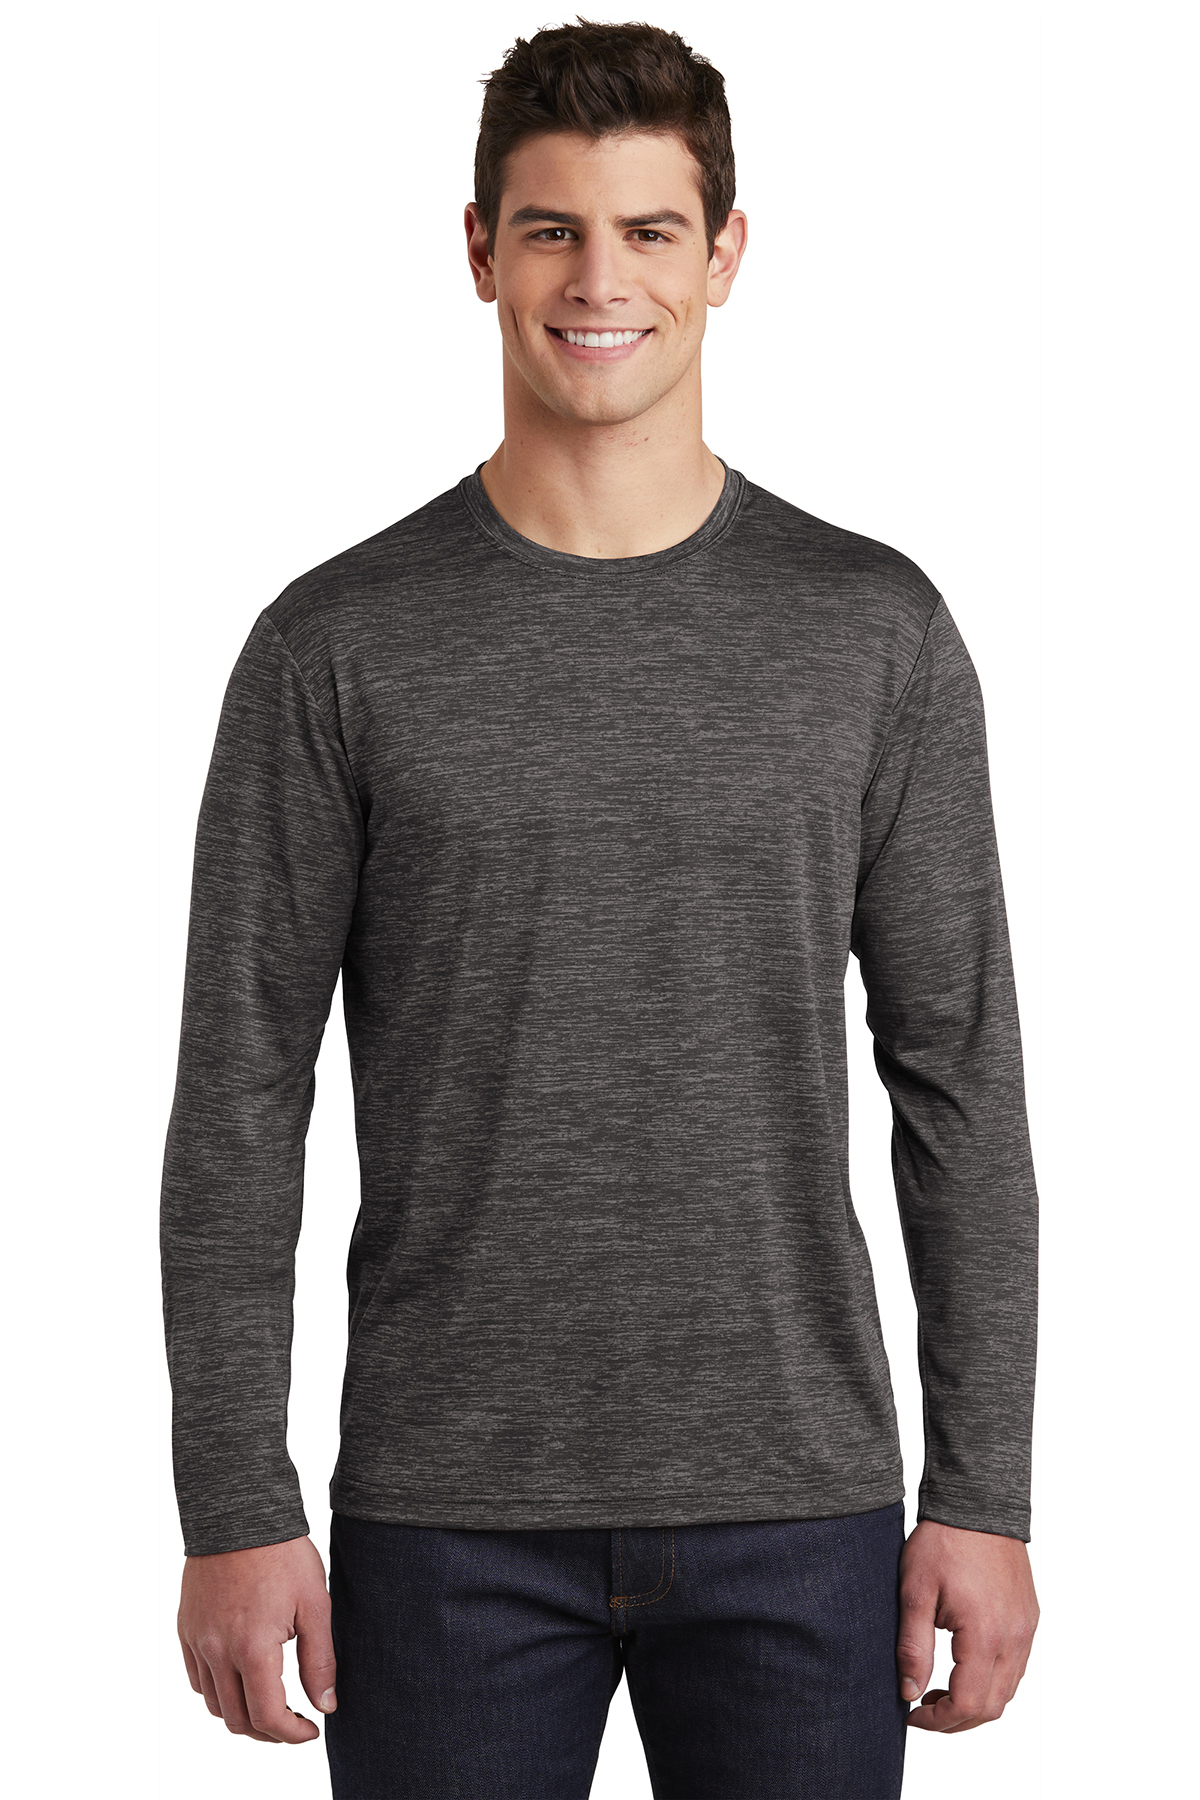 Sport Tek Long Sleeve Posicharge Electric Heather Tee T Shirts Sport Tek Shop with confidence on ebay! sport tek long sleeve posicharge electric heather tee t shirts sport tek